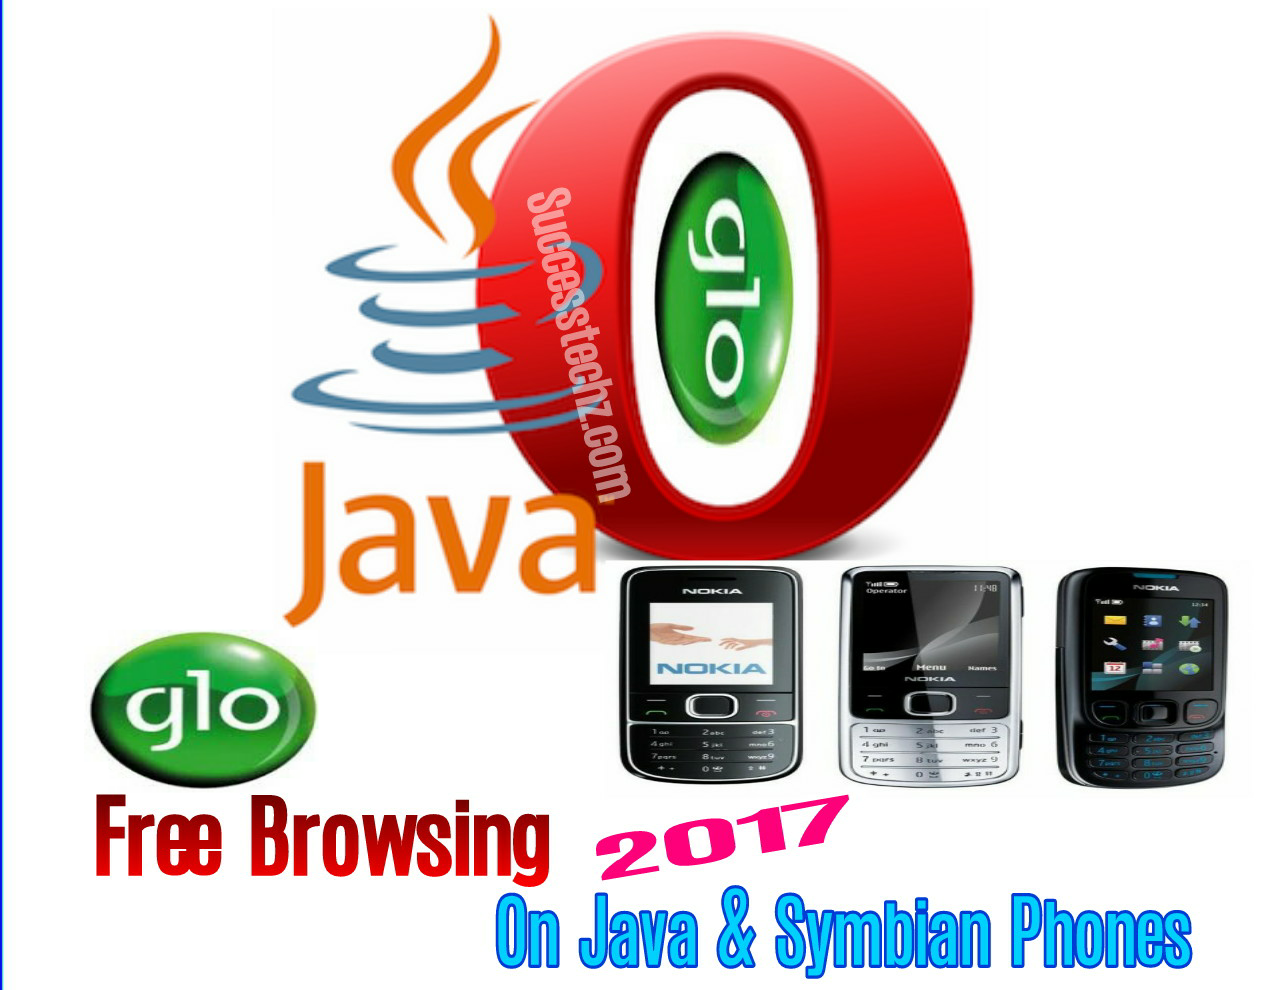 Download Opera Mini 7 Handler Java Jar - dertnonfl's diary